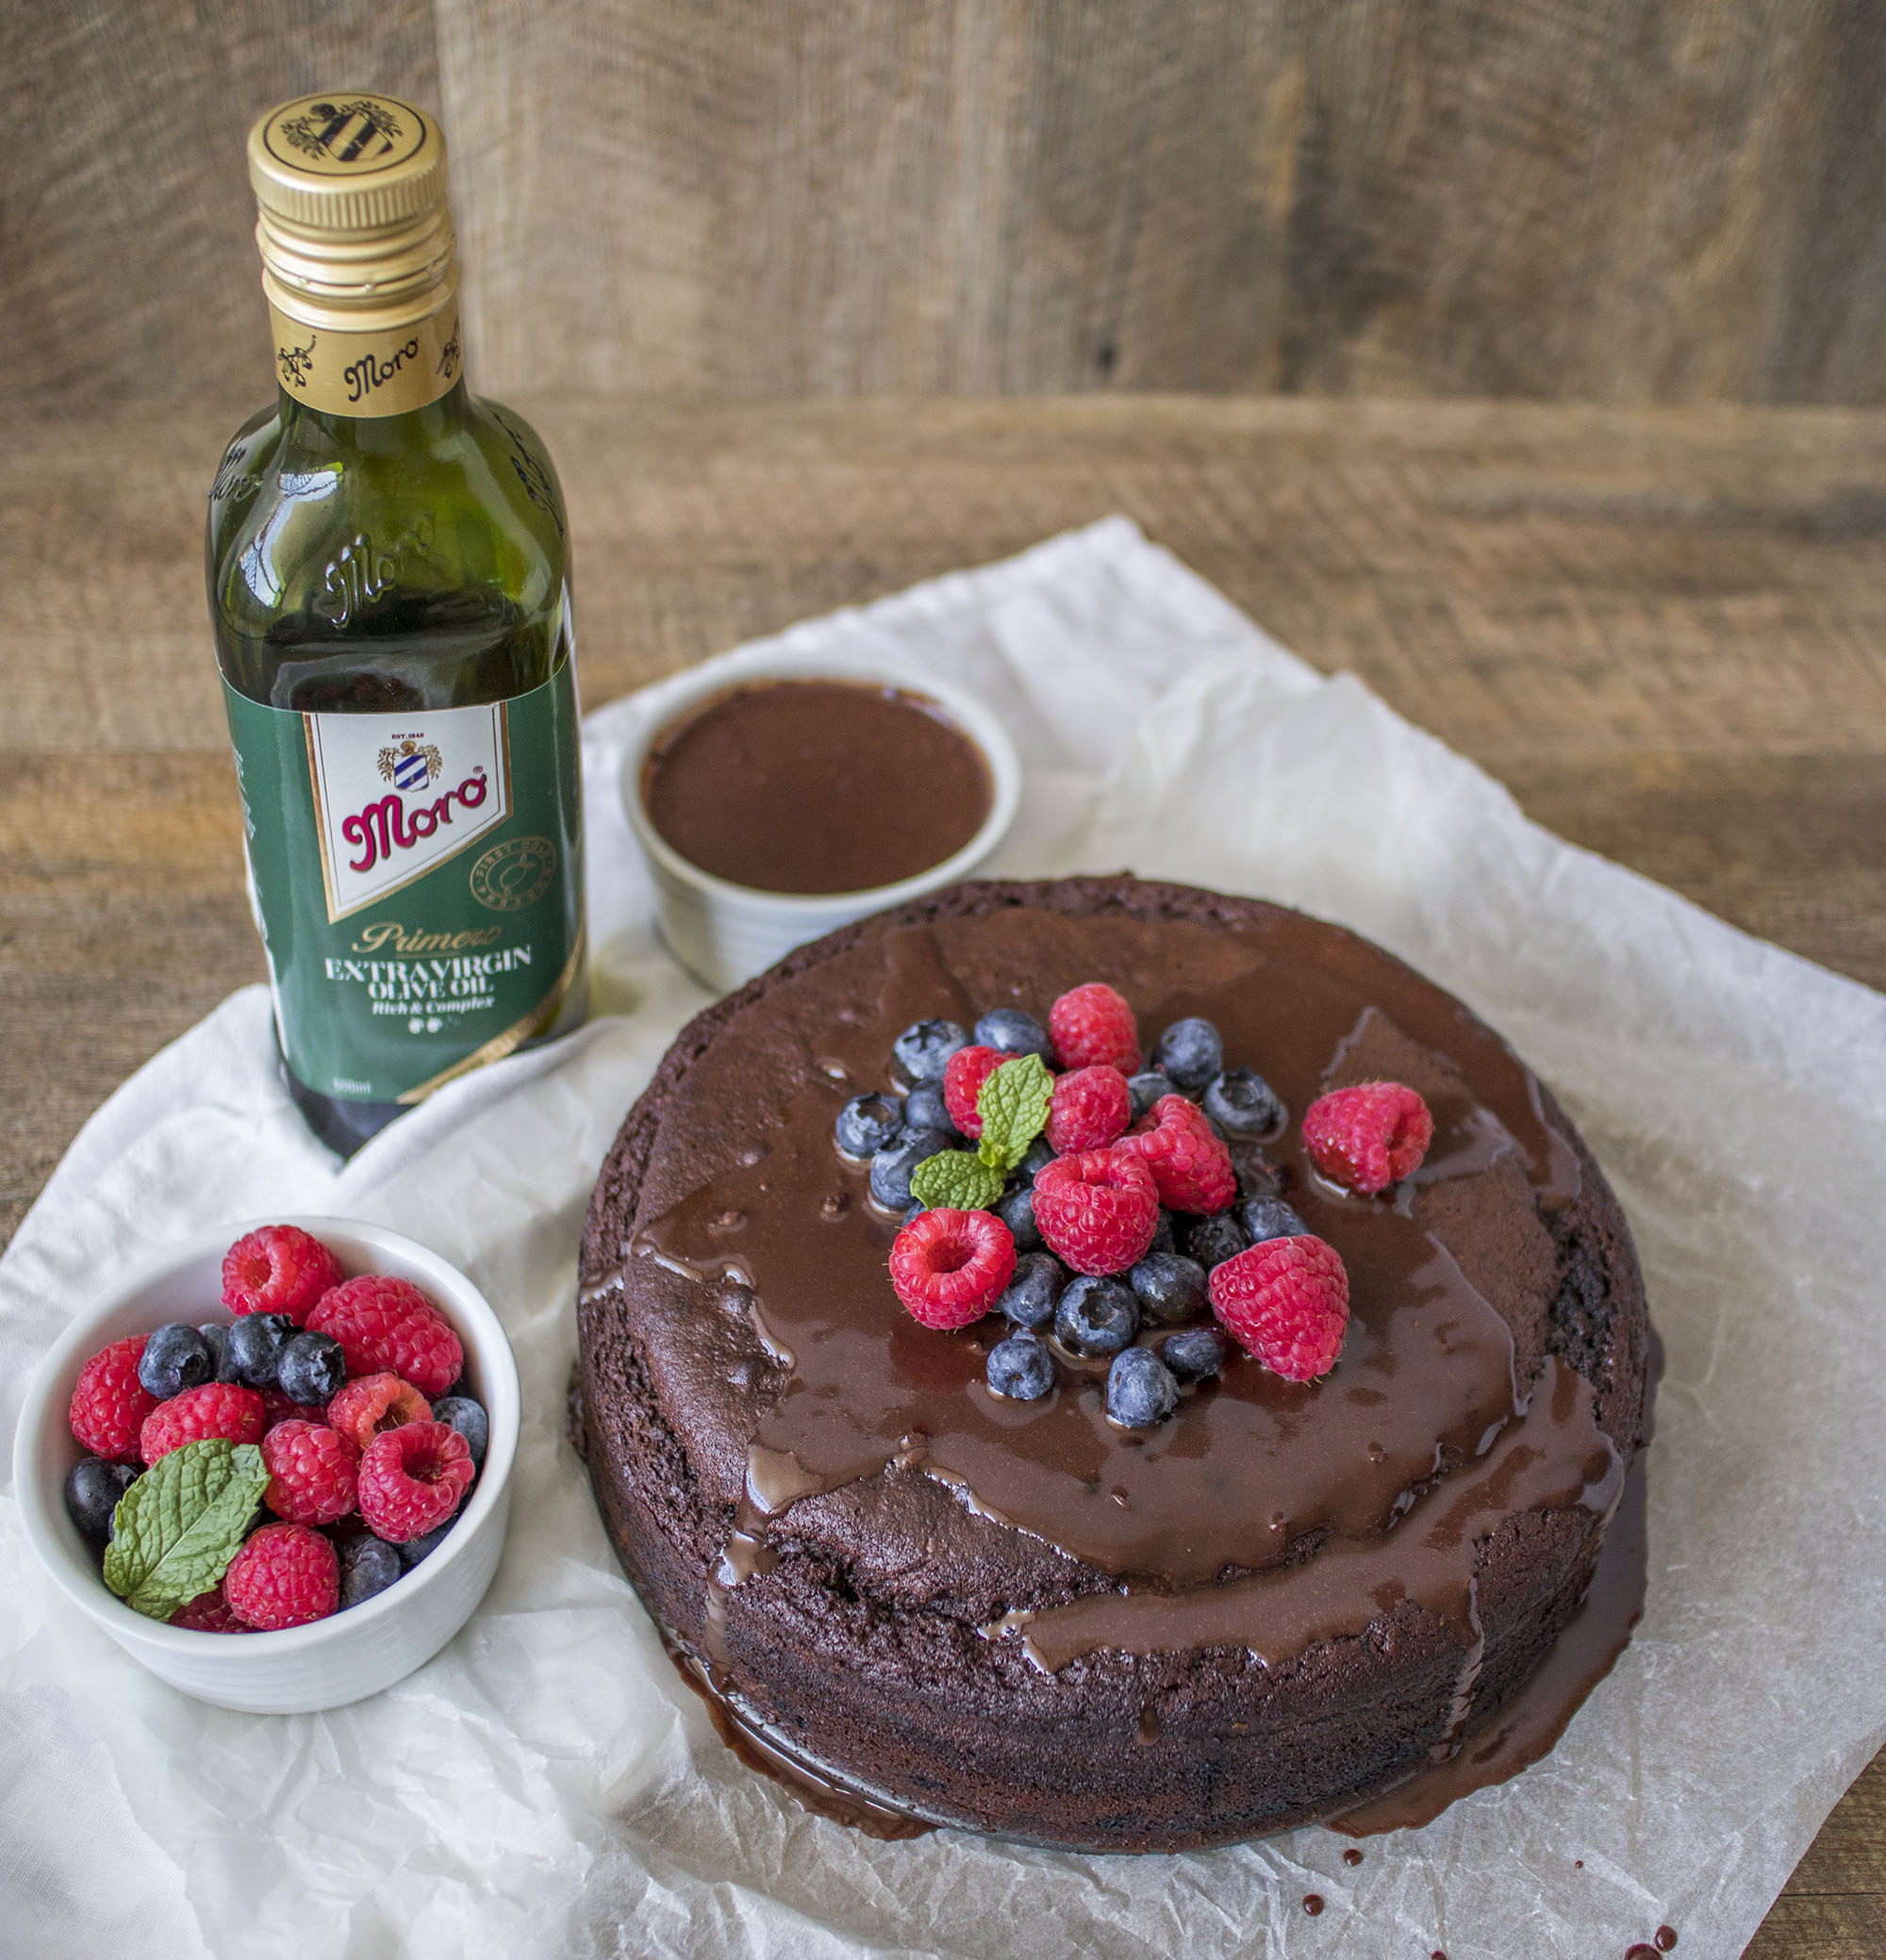 Vegan Chocolate Olive Oil Cake with Chocolate Olive Oil Sauce